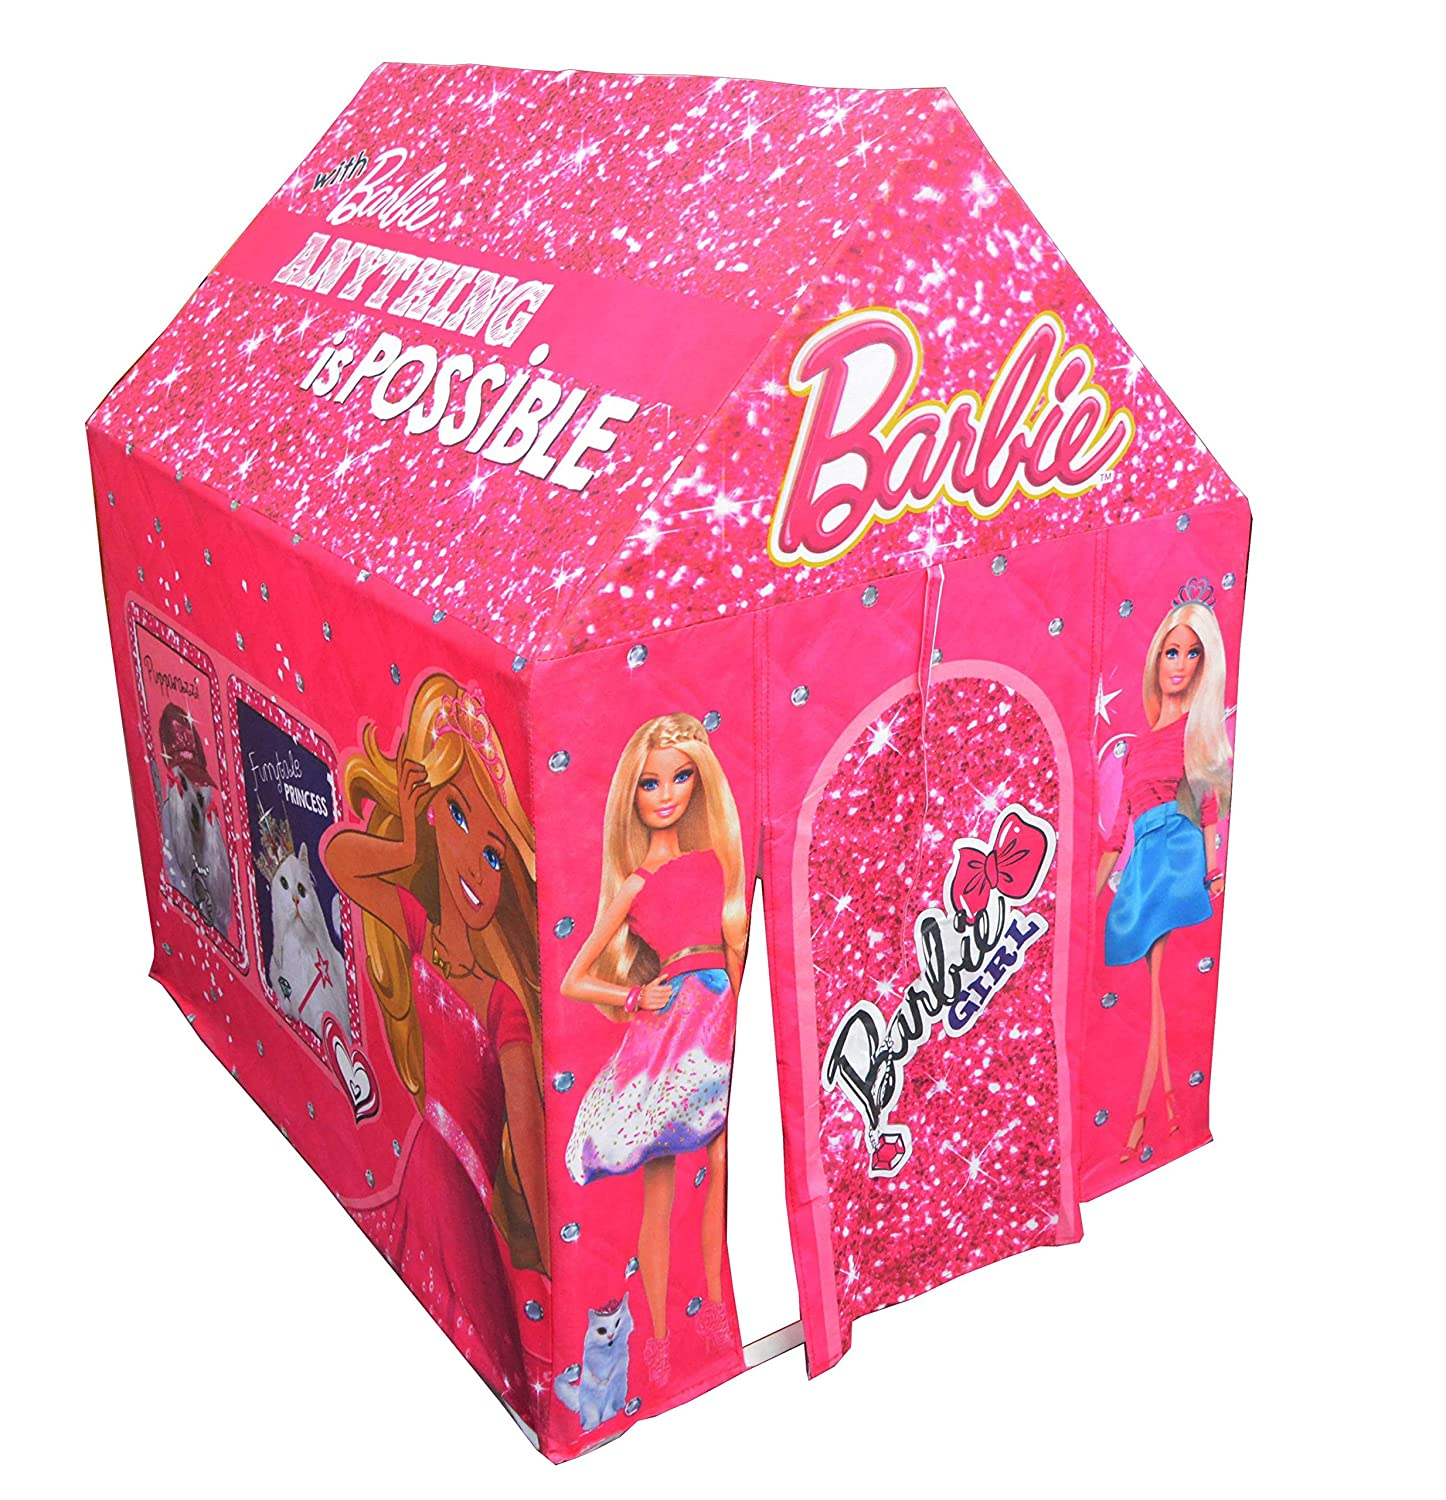 Buy Mattel Barbie Play Tent House Multi Color Online at Low Prices in India - Amazon.in  sc 1 st  Amazon.in & Buy Mattel Barbie Play Tent House Multi Color Online at Low ...